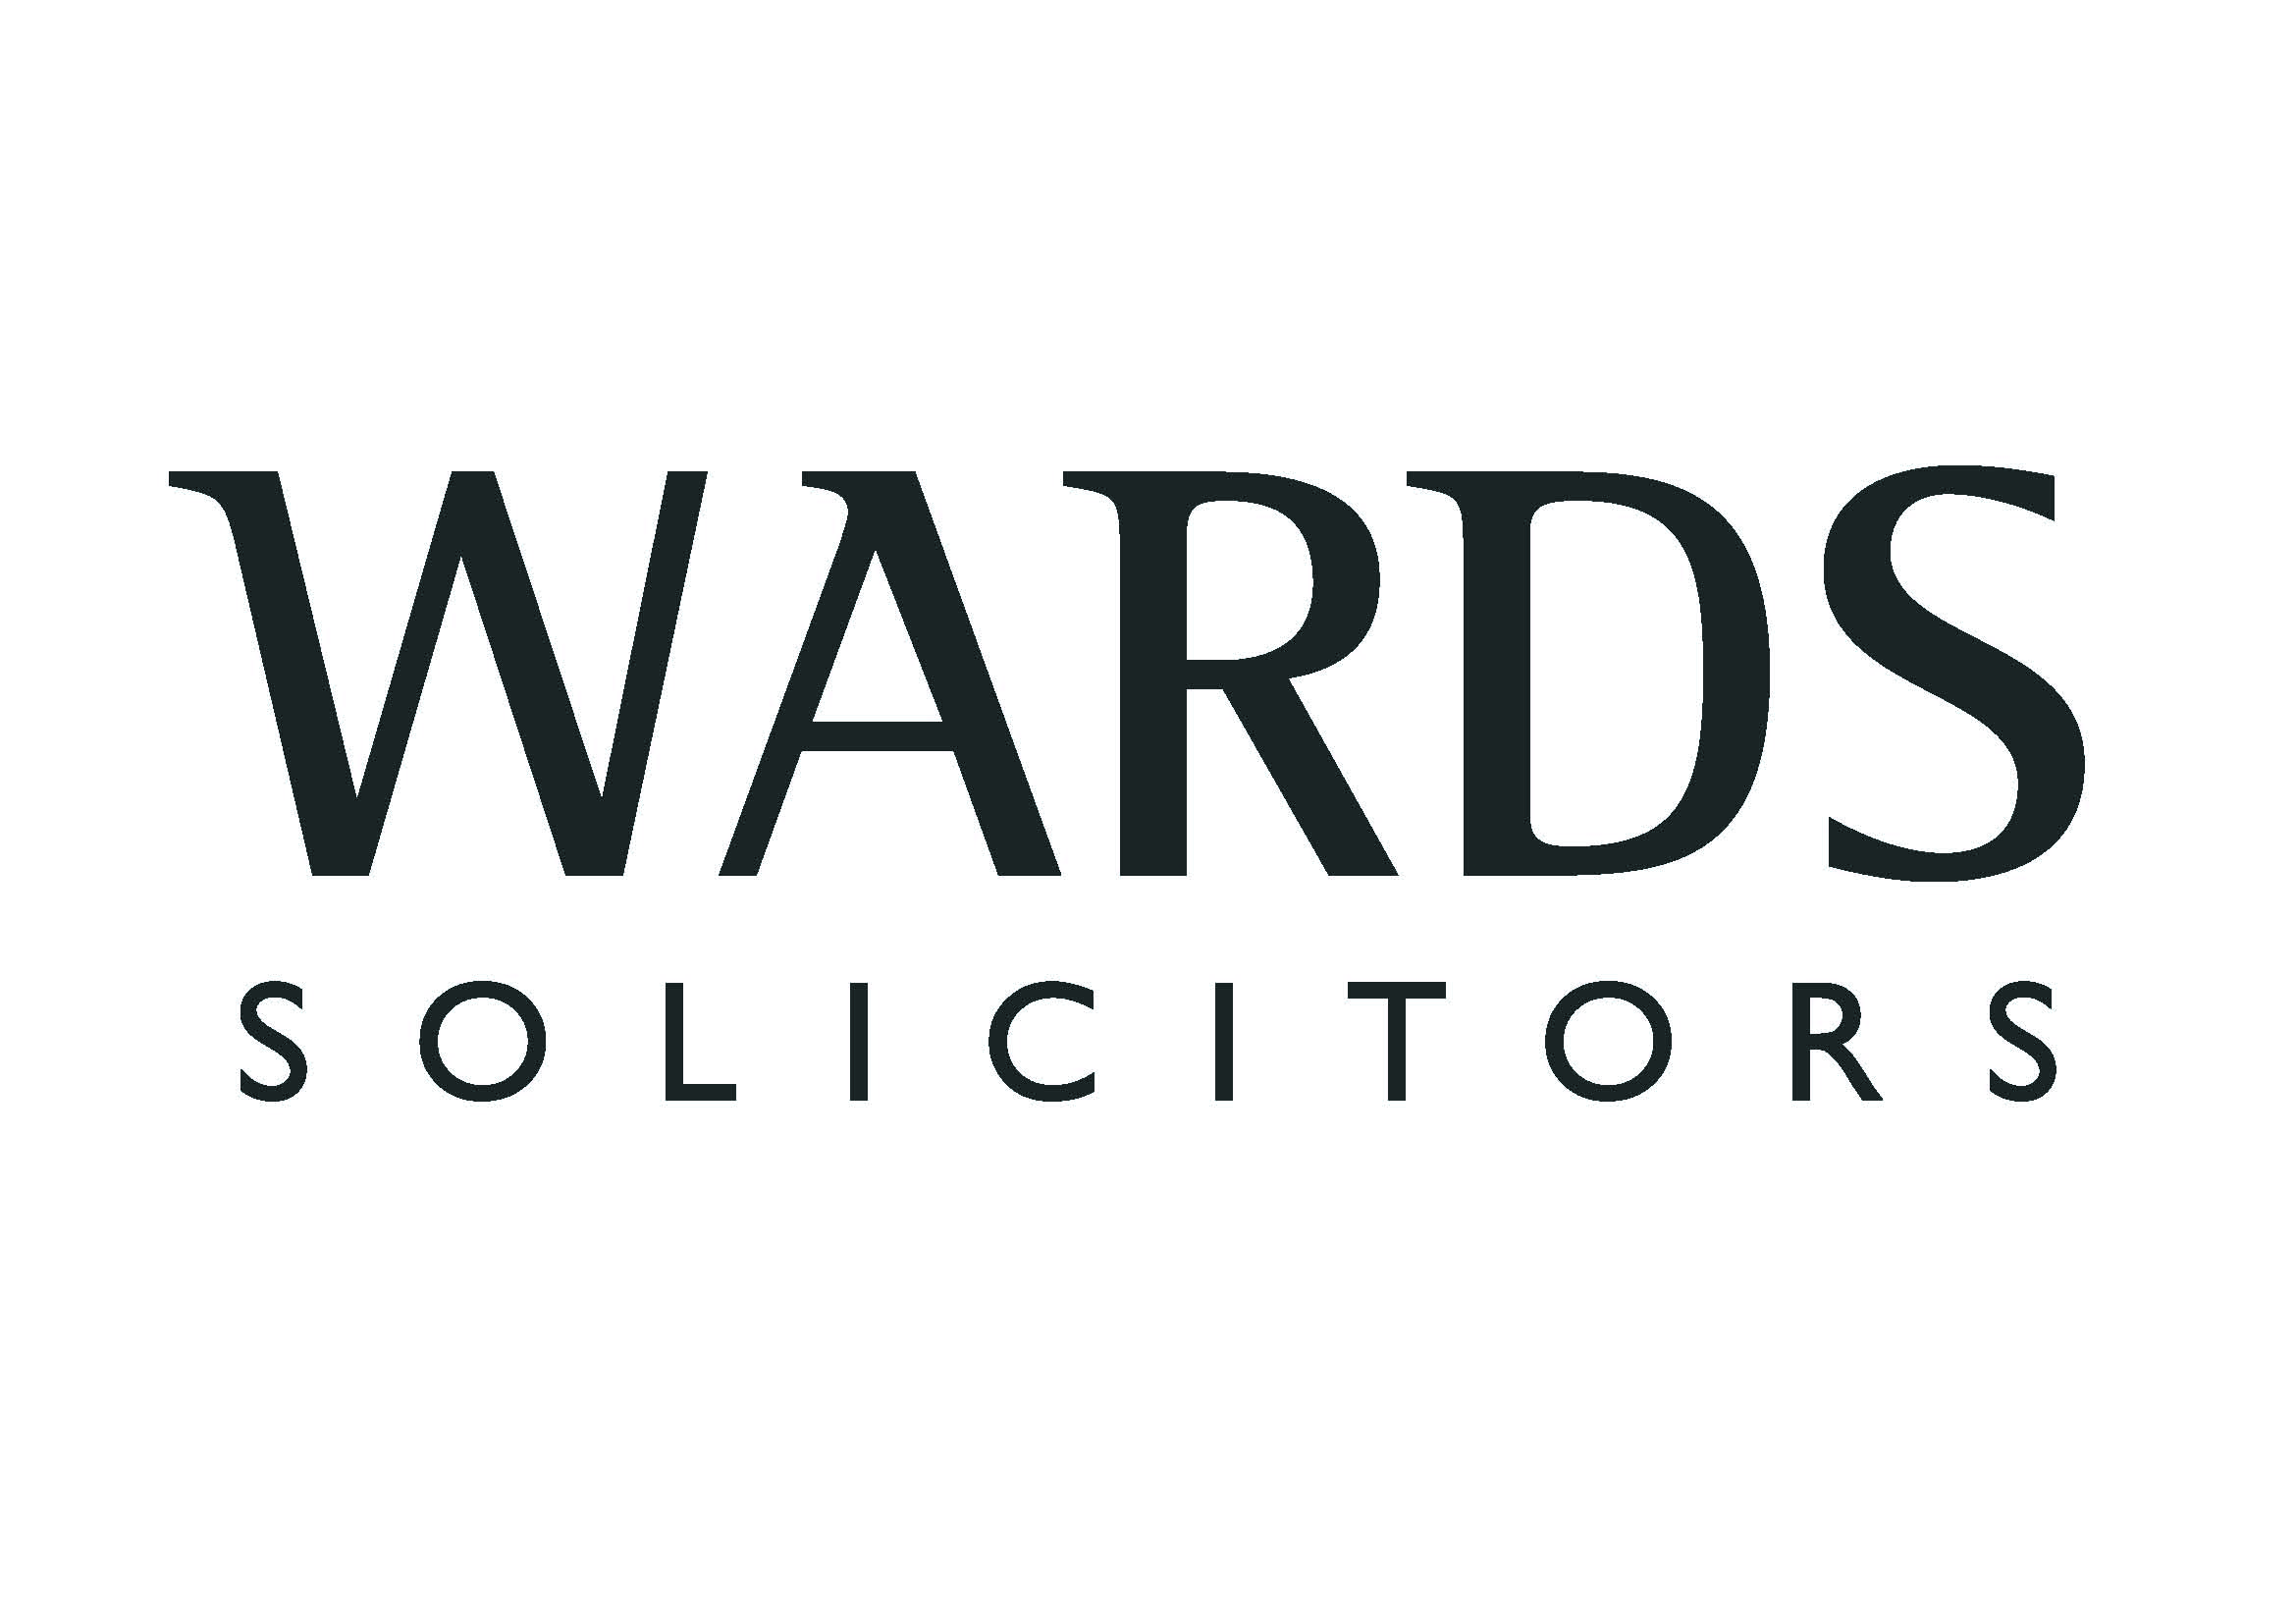 Wards Solicitors